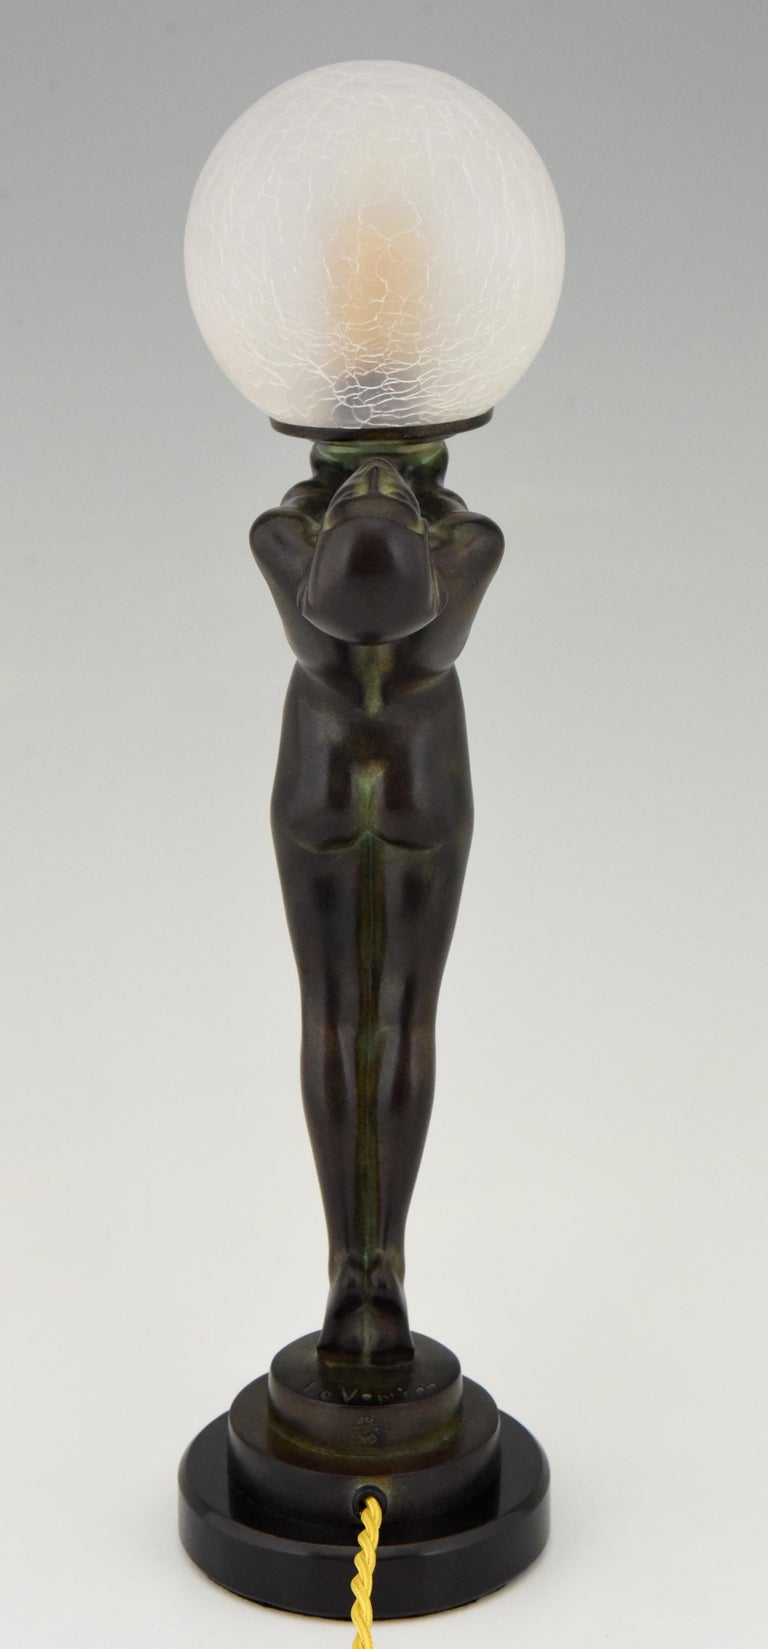 Art Deco Figural Lamp Standing Nude Holding a Glass Shade Max Le Verrier Clarté For Sale 1